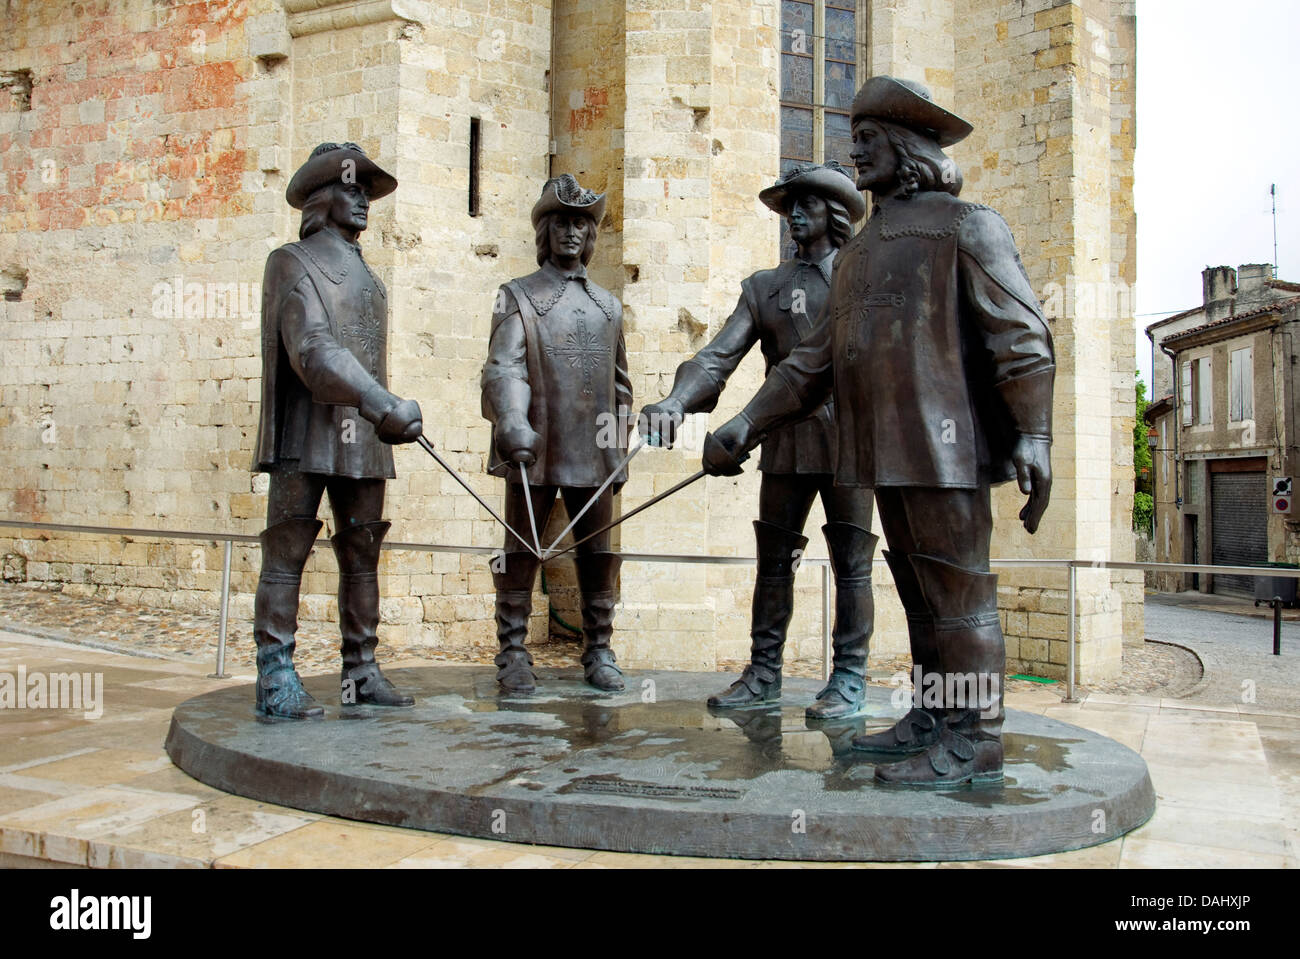 D'Artagnan and the three Musketeers, outside the St Pierre cathedral in Condom on a quiet morning - Stock Image